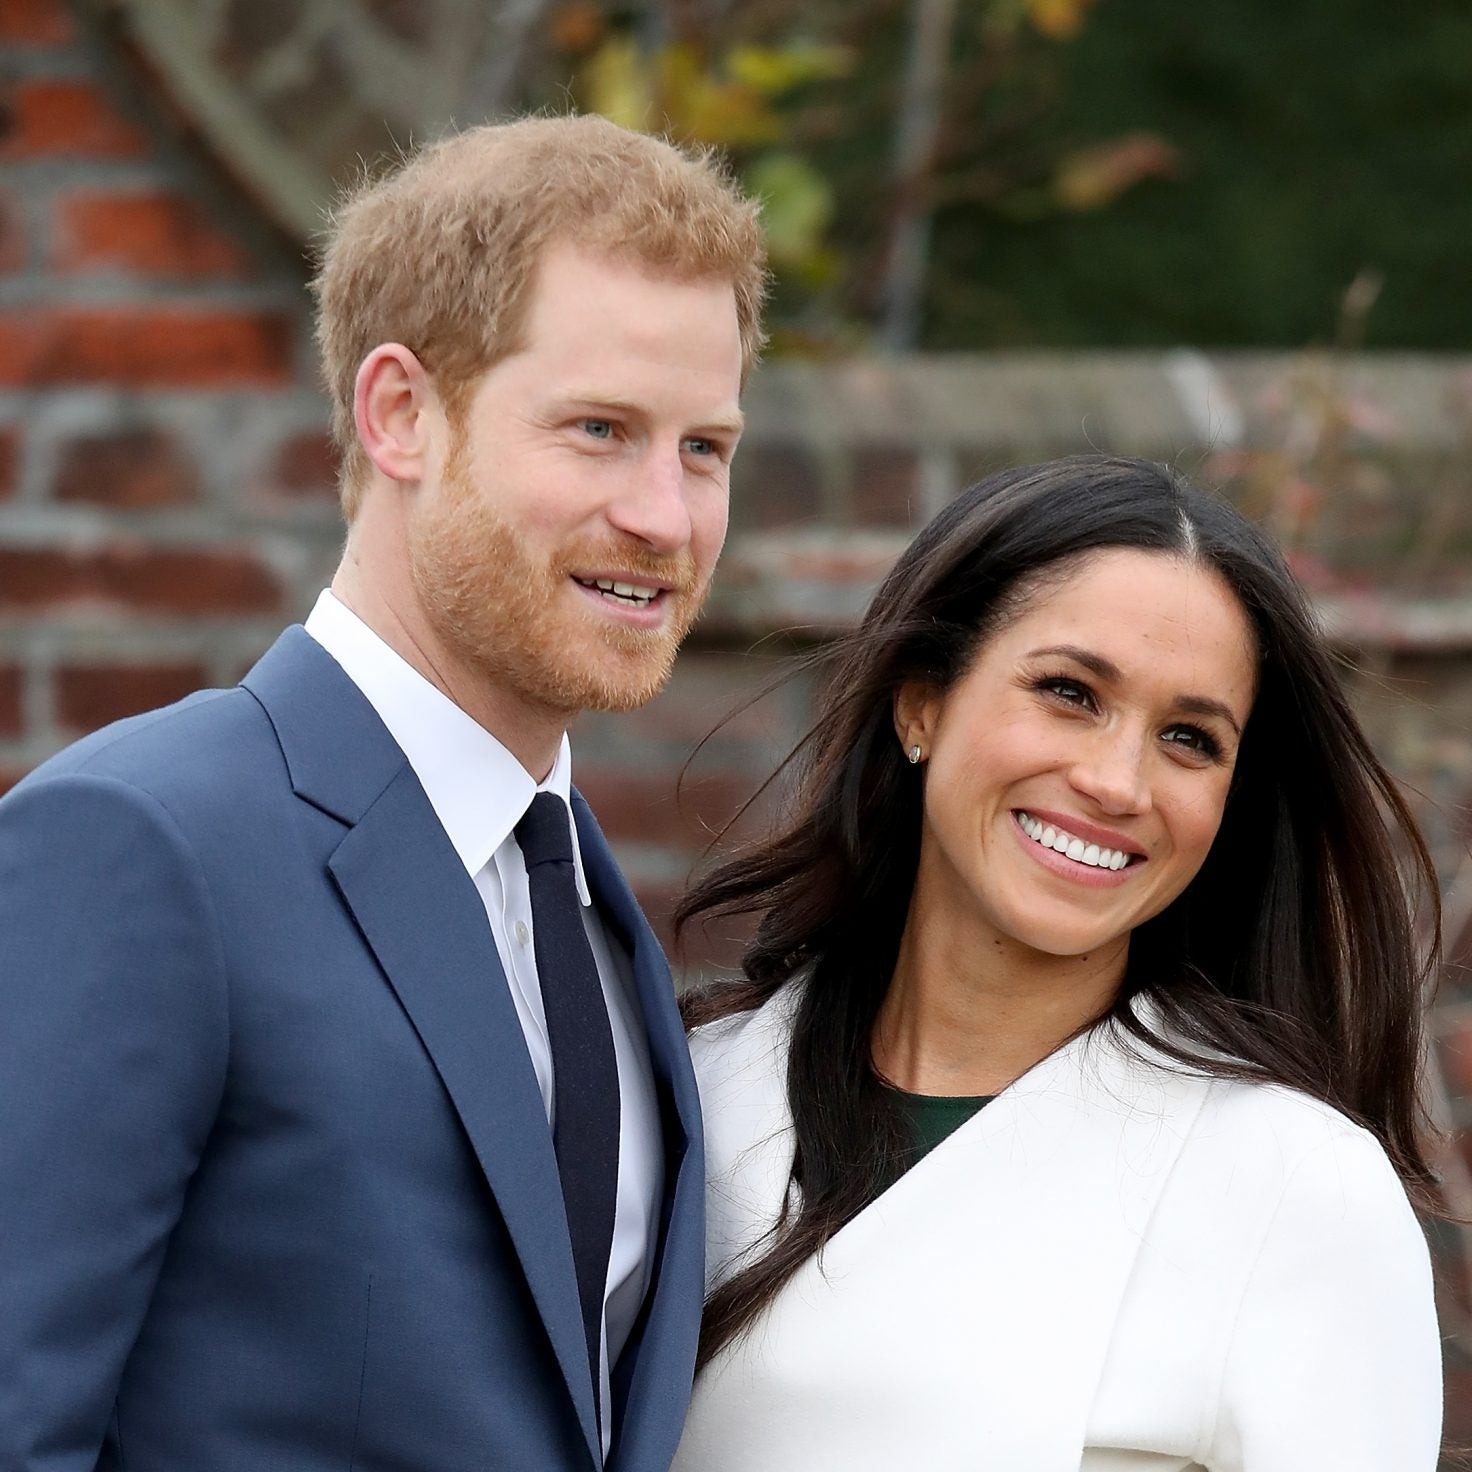 Meghan Markle And Prince Harry Will Enjoy A Low Key Second Wedding Anniversary